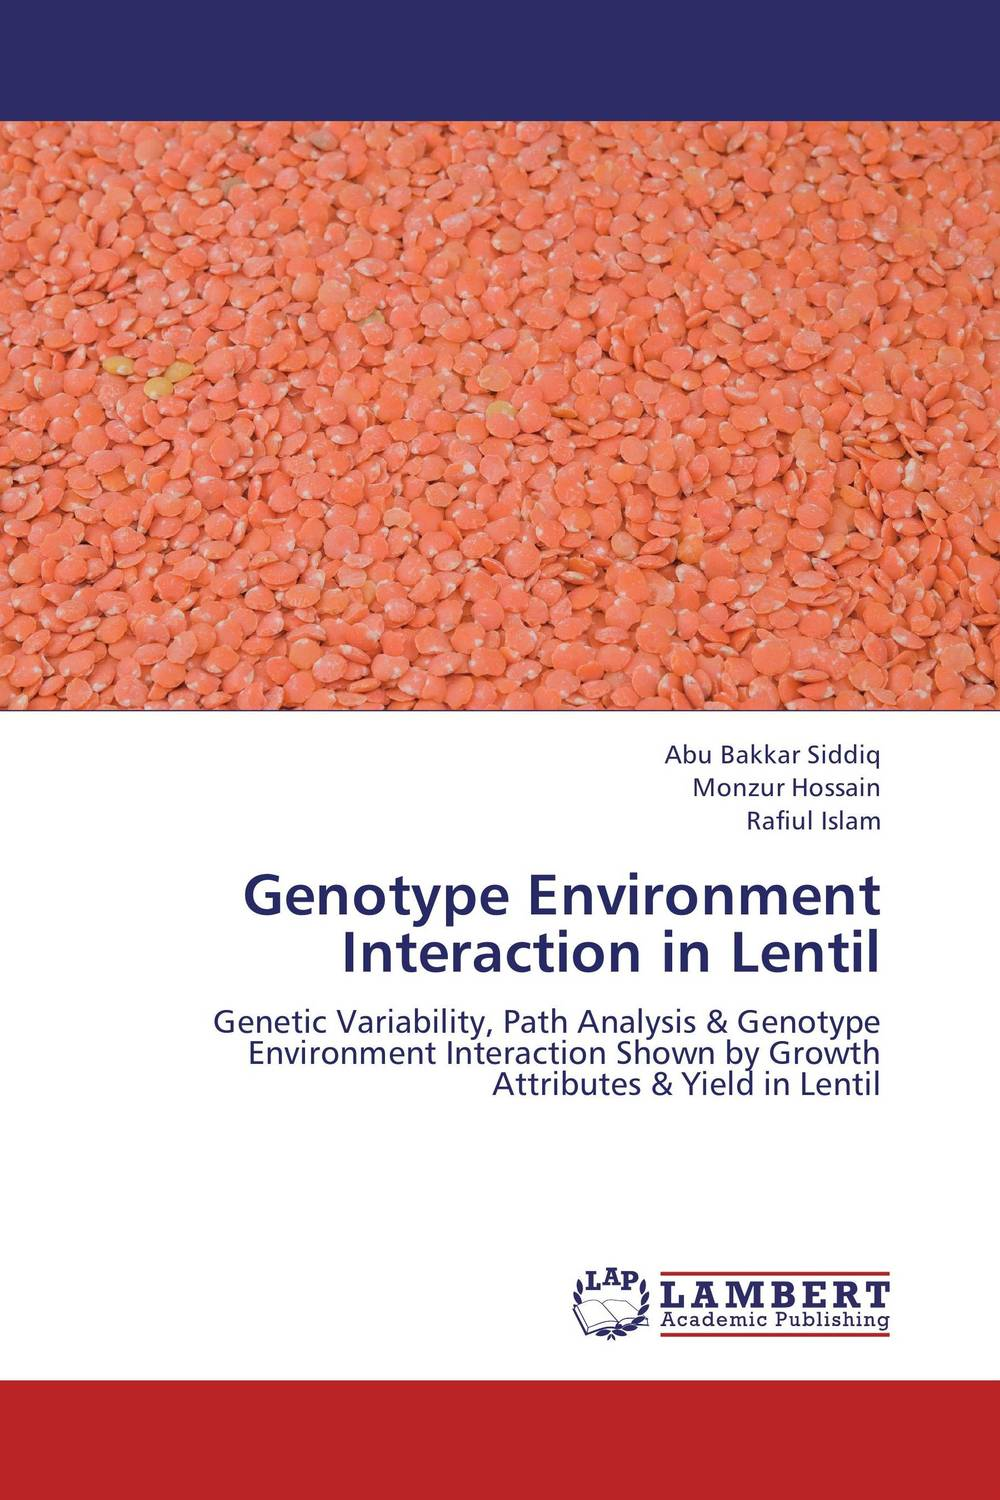 Genotype Environment Interaction in Lentil wheat genotypes for irrigated and rainfed area using stress indices